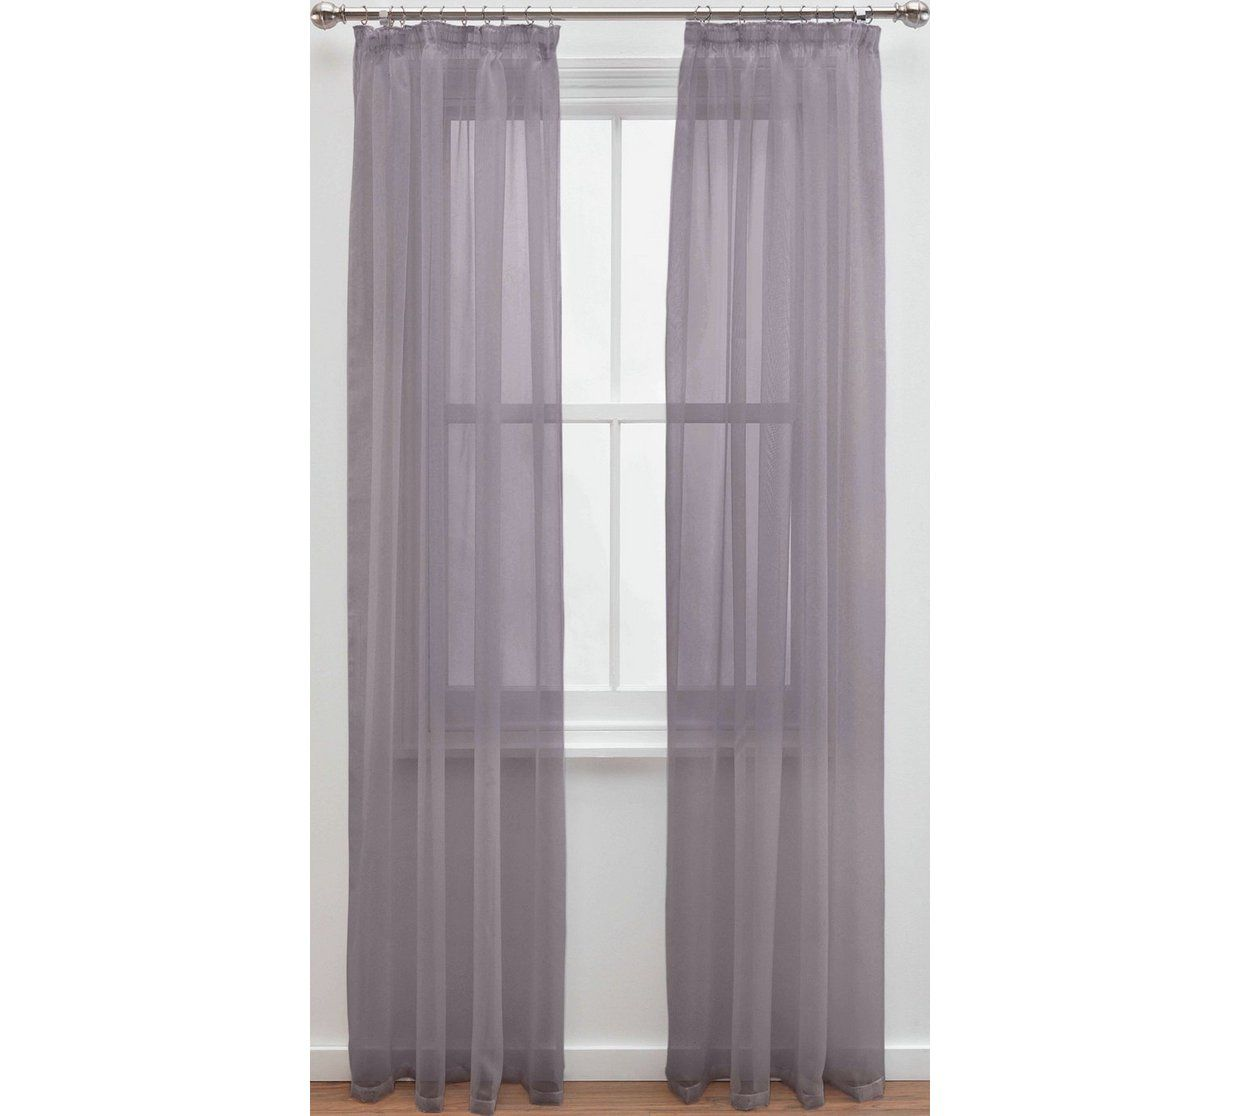 Buy Argos Home Unlined Voile Panels Grey Curtains Argos Home